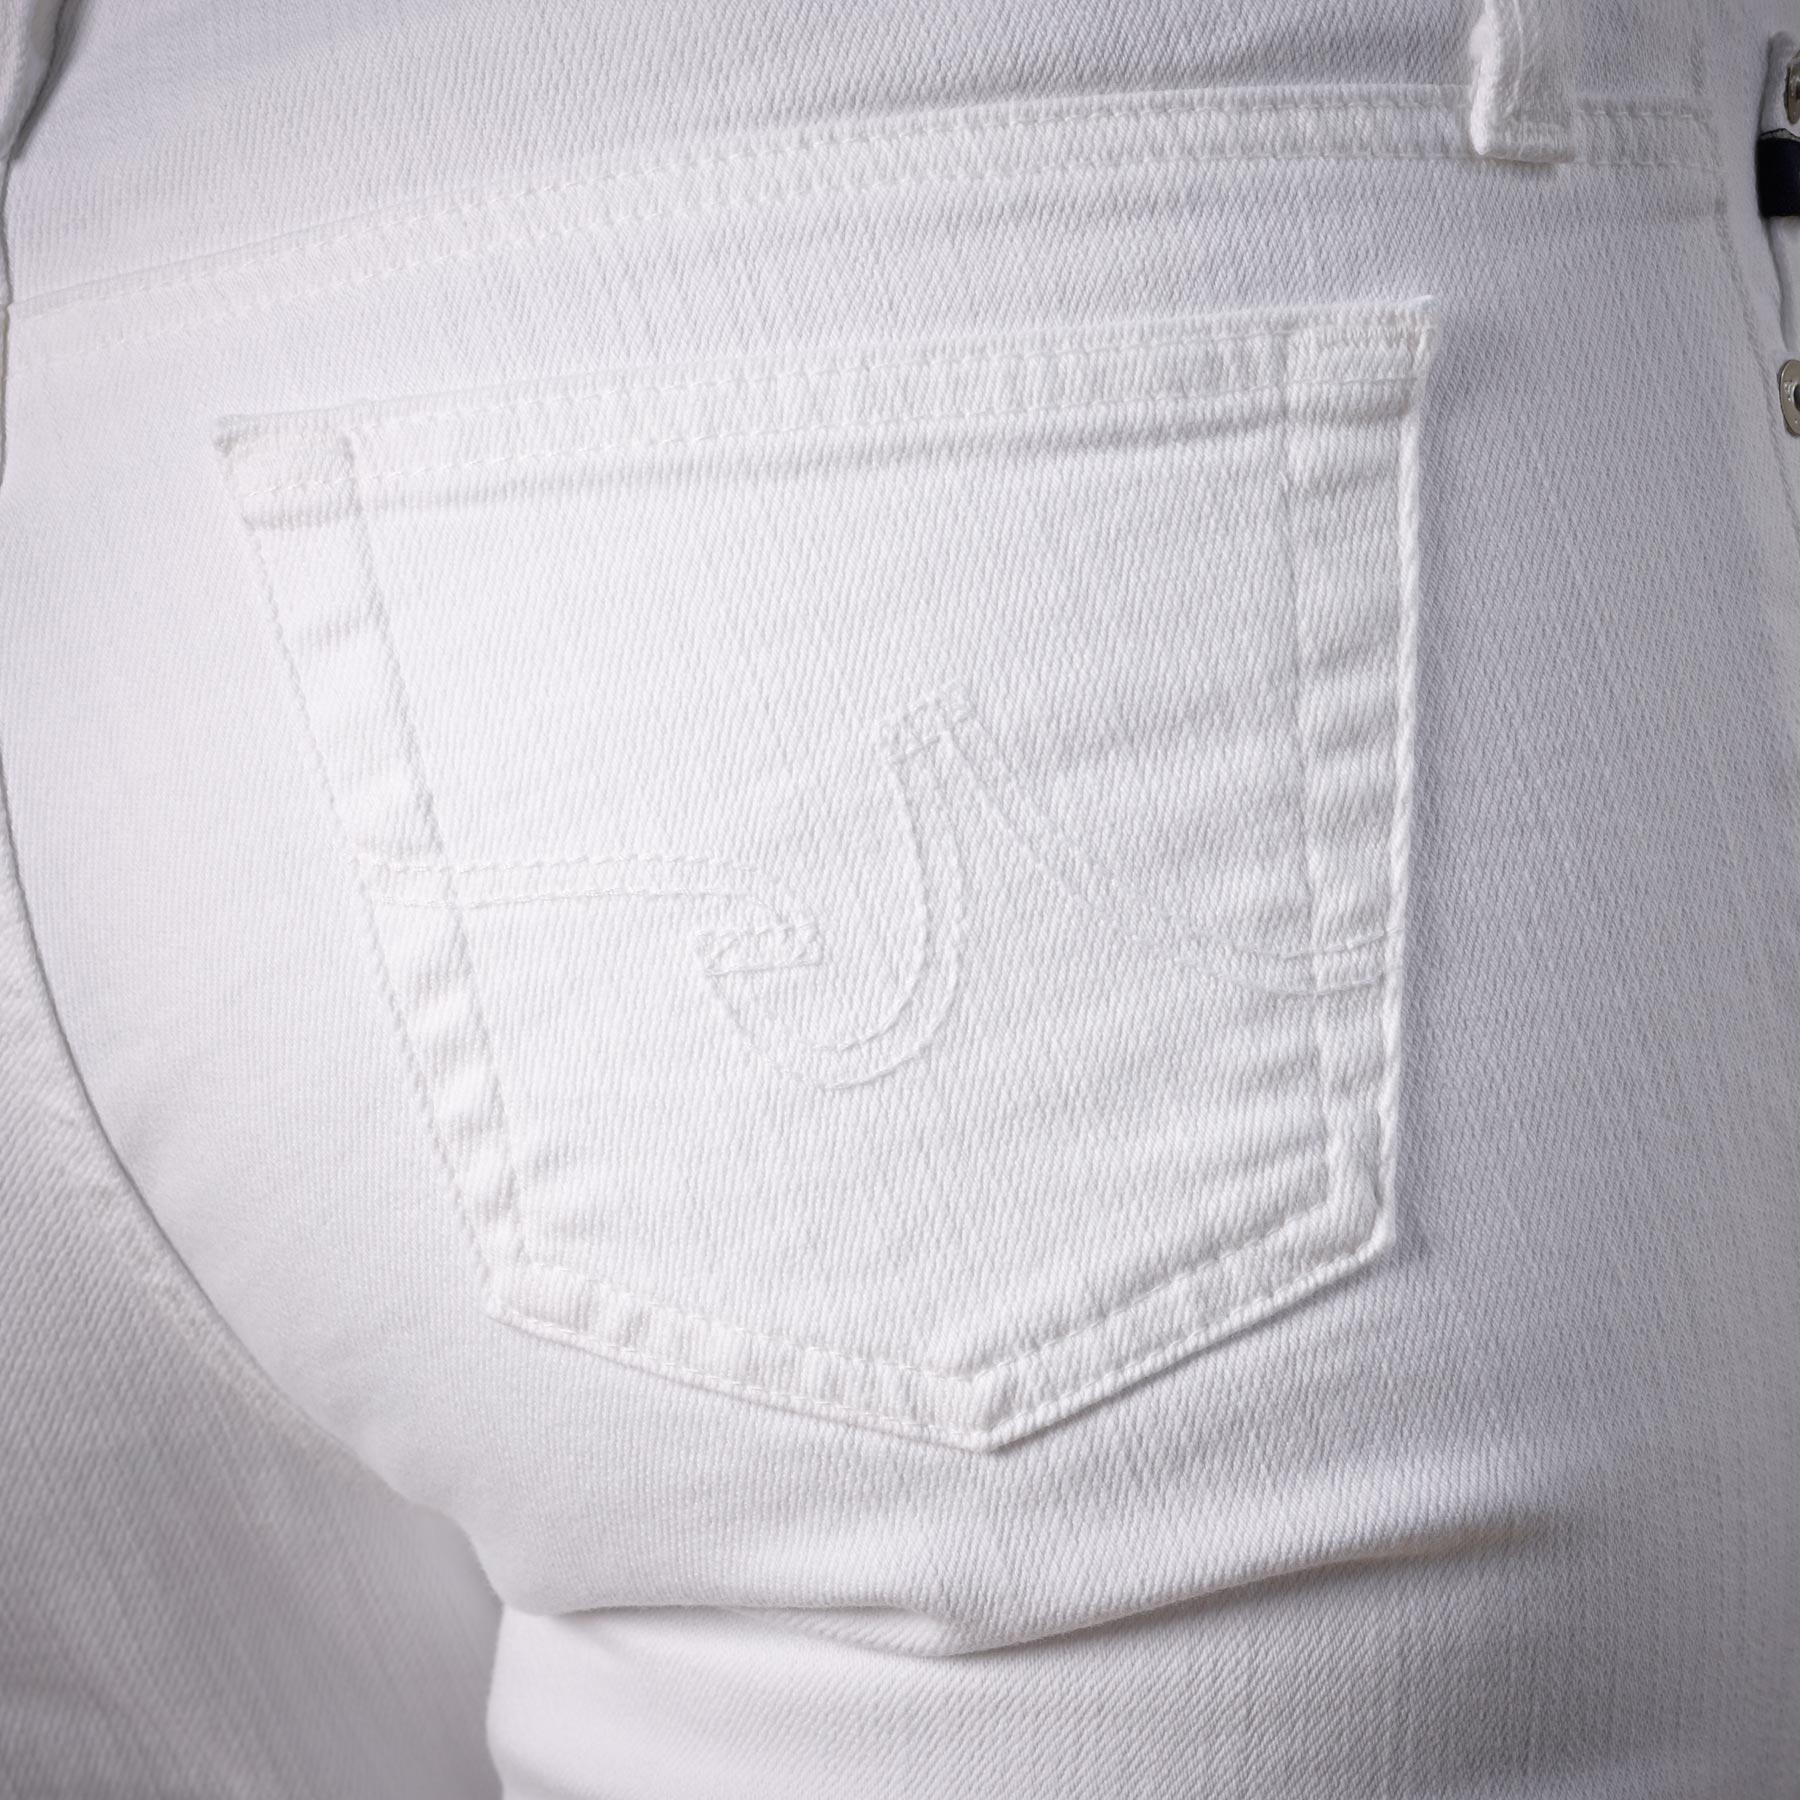 A G PREMIERE SKINNY JEANS: View 4